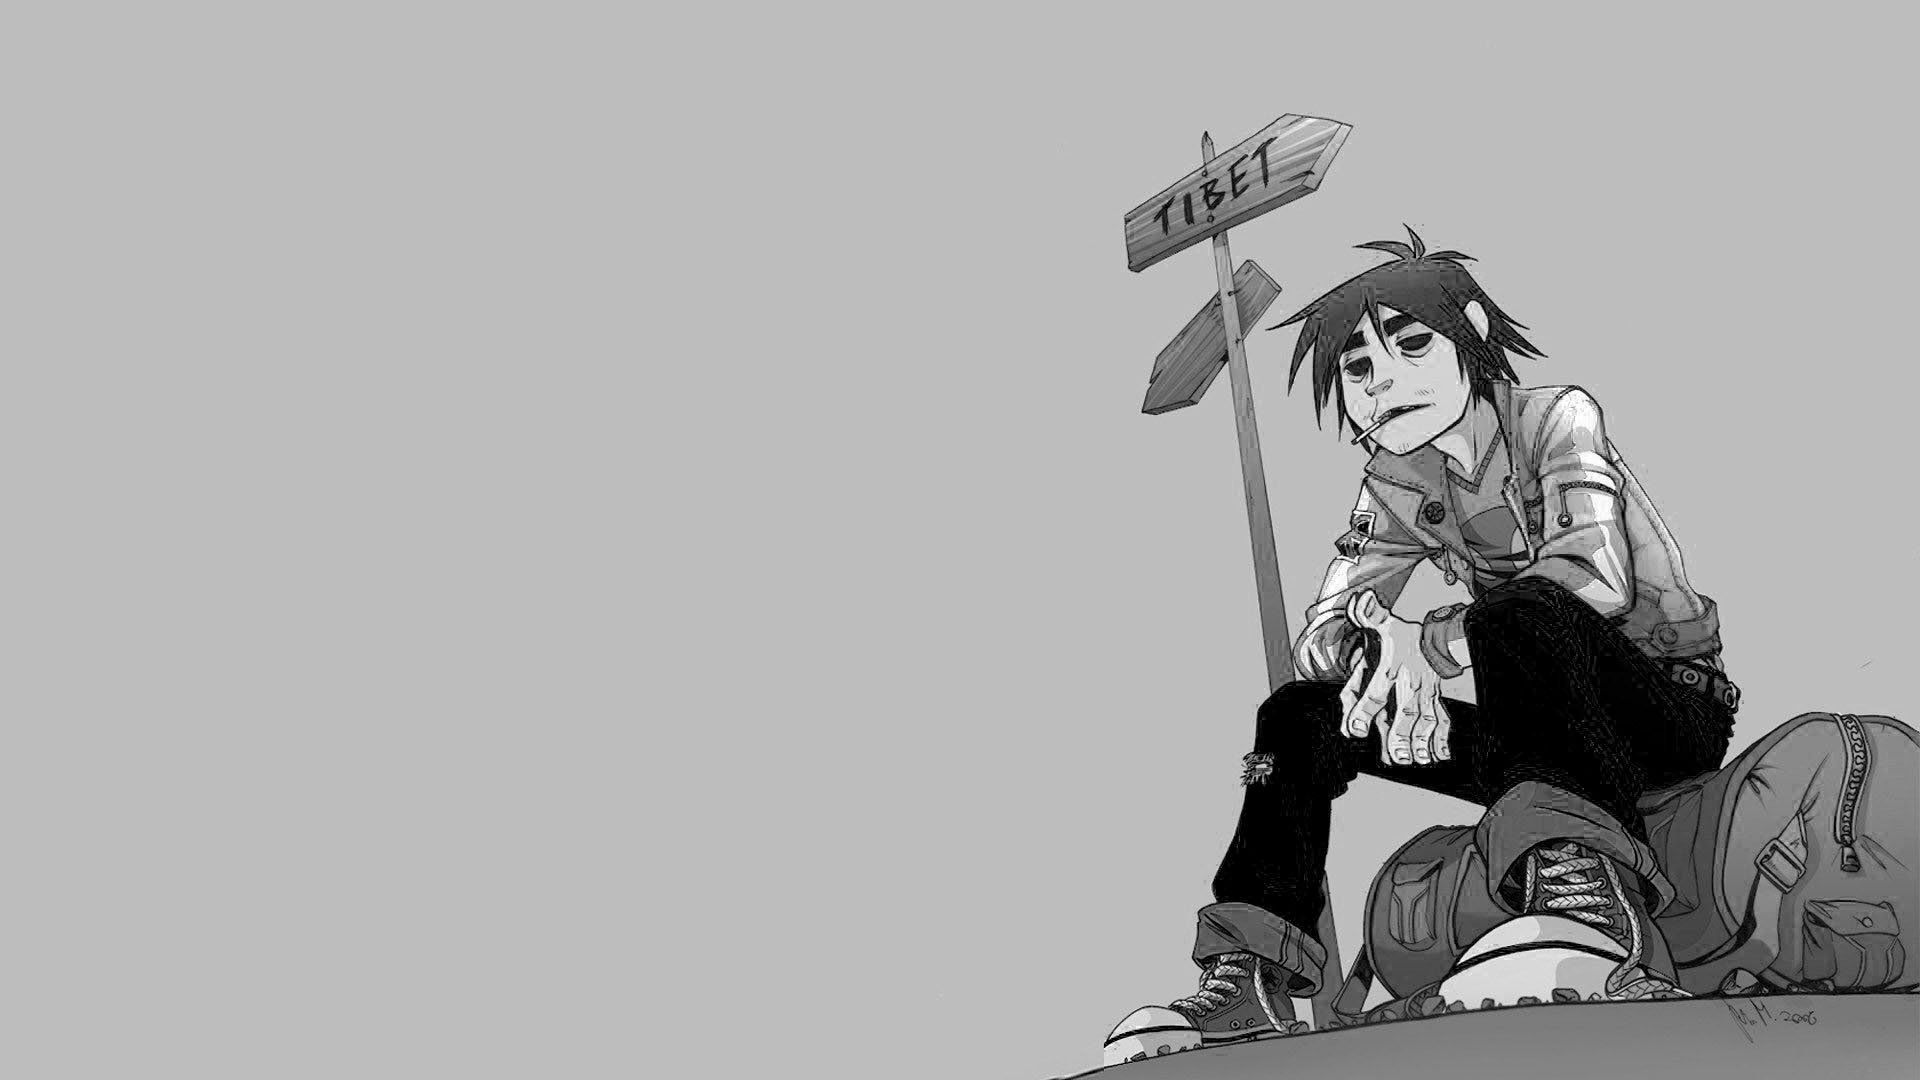 1920x1080 Download Gorillaz 2d Wallpaper ...